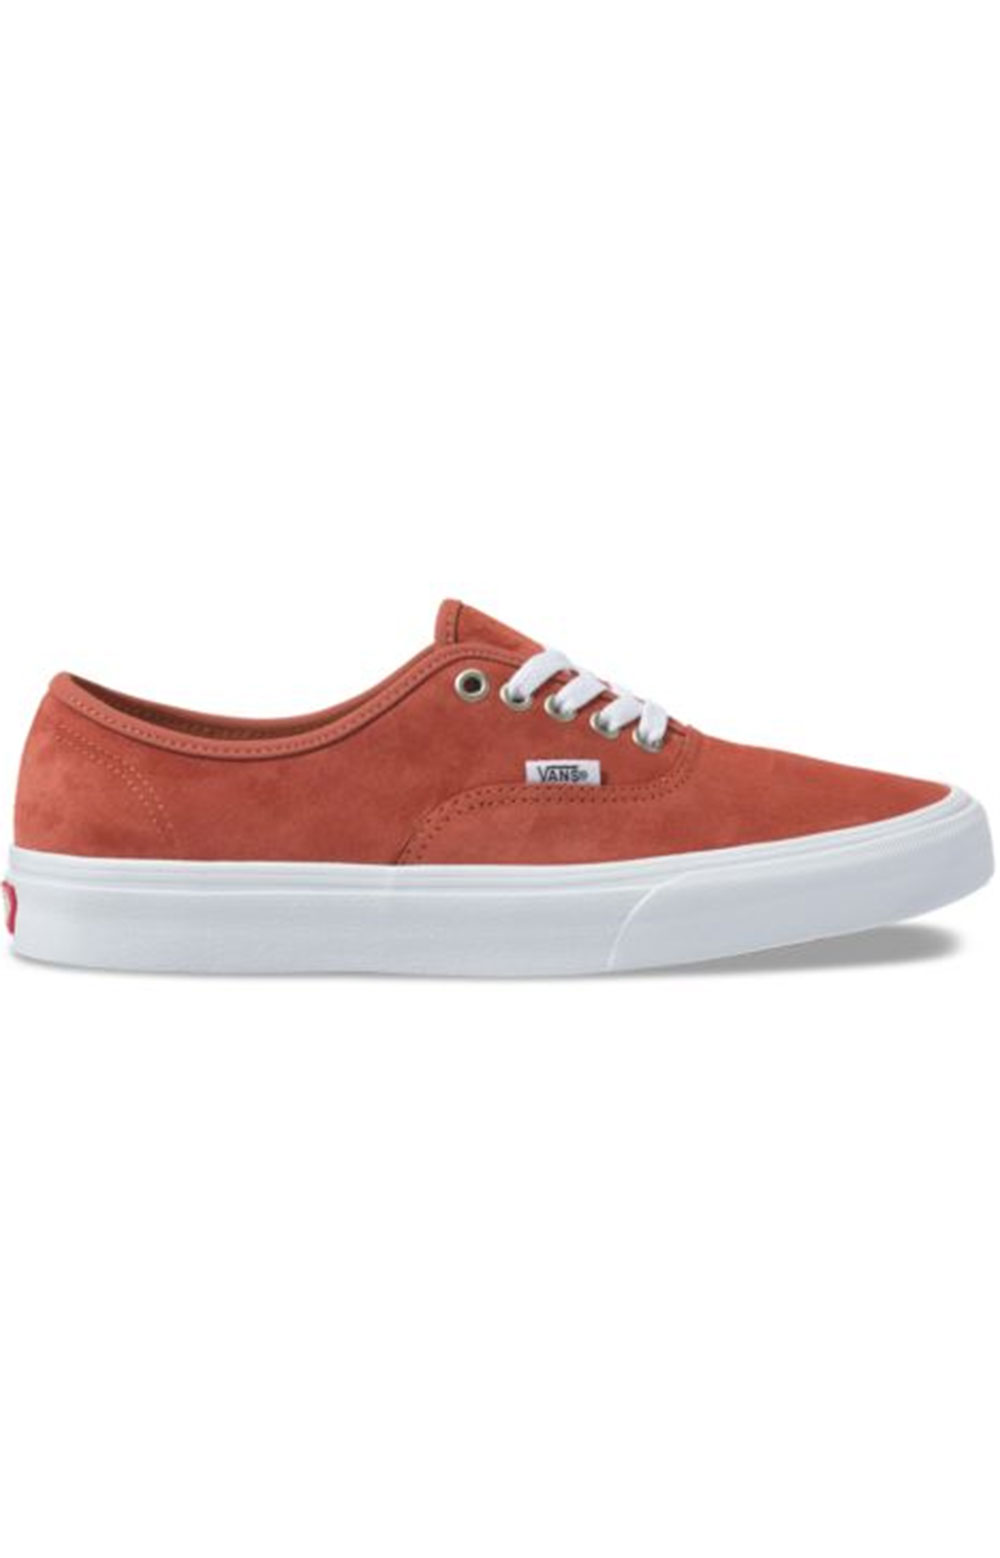 (Z5IV75) Pig Suede Authentic Shoe - Burnt Brick